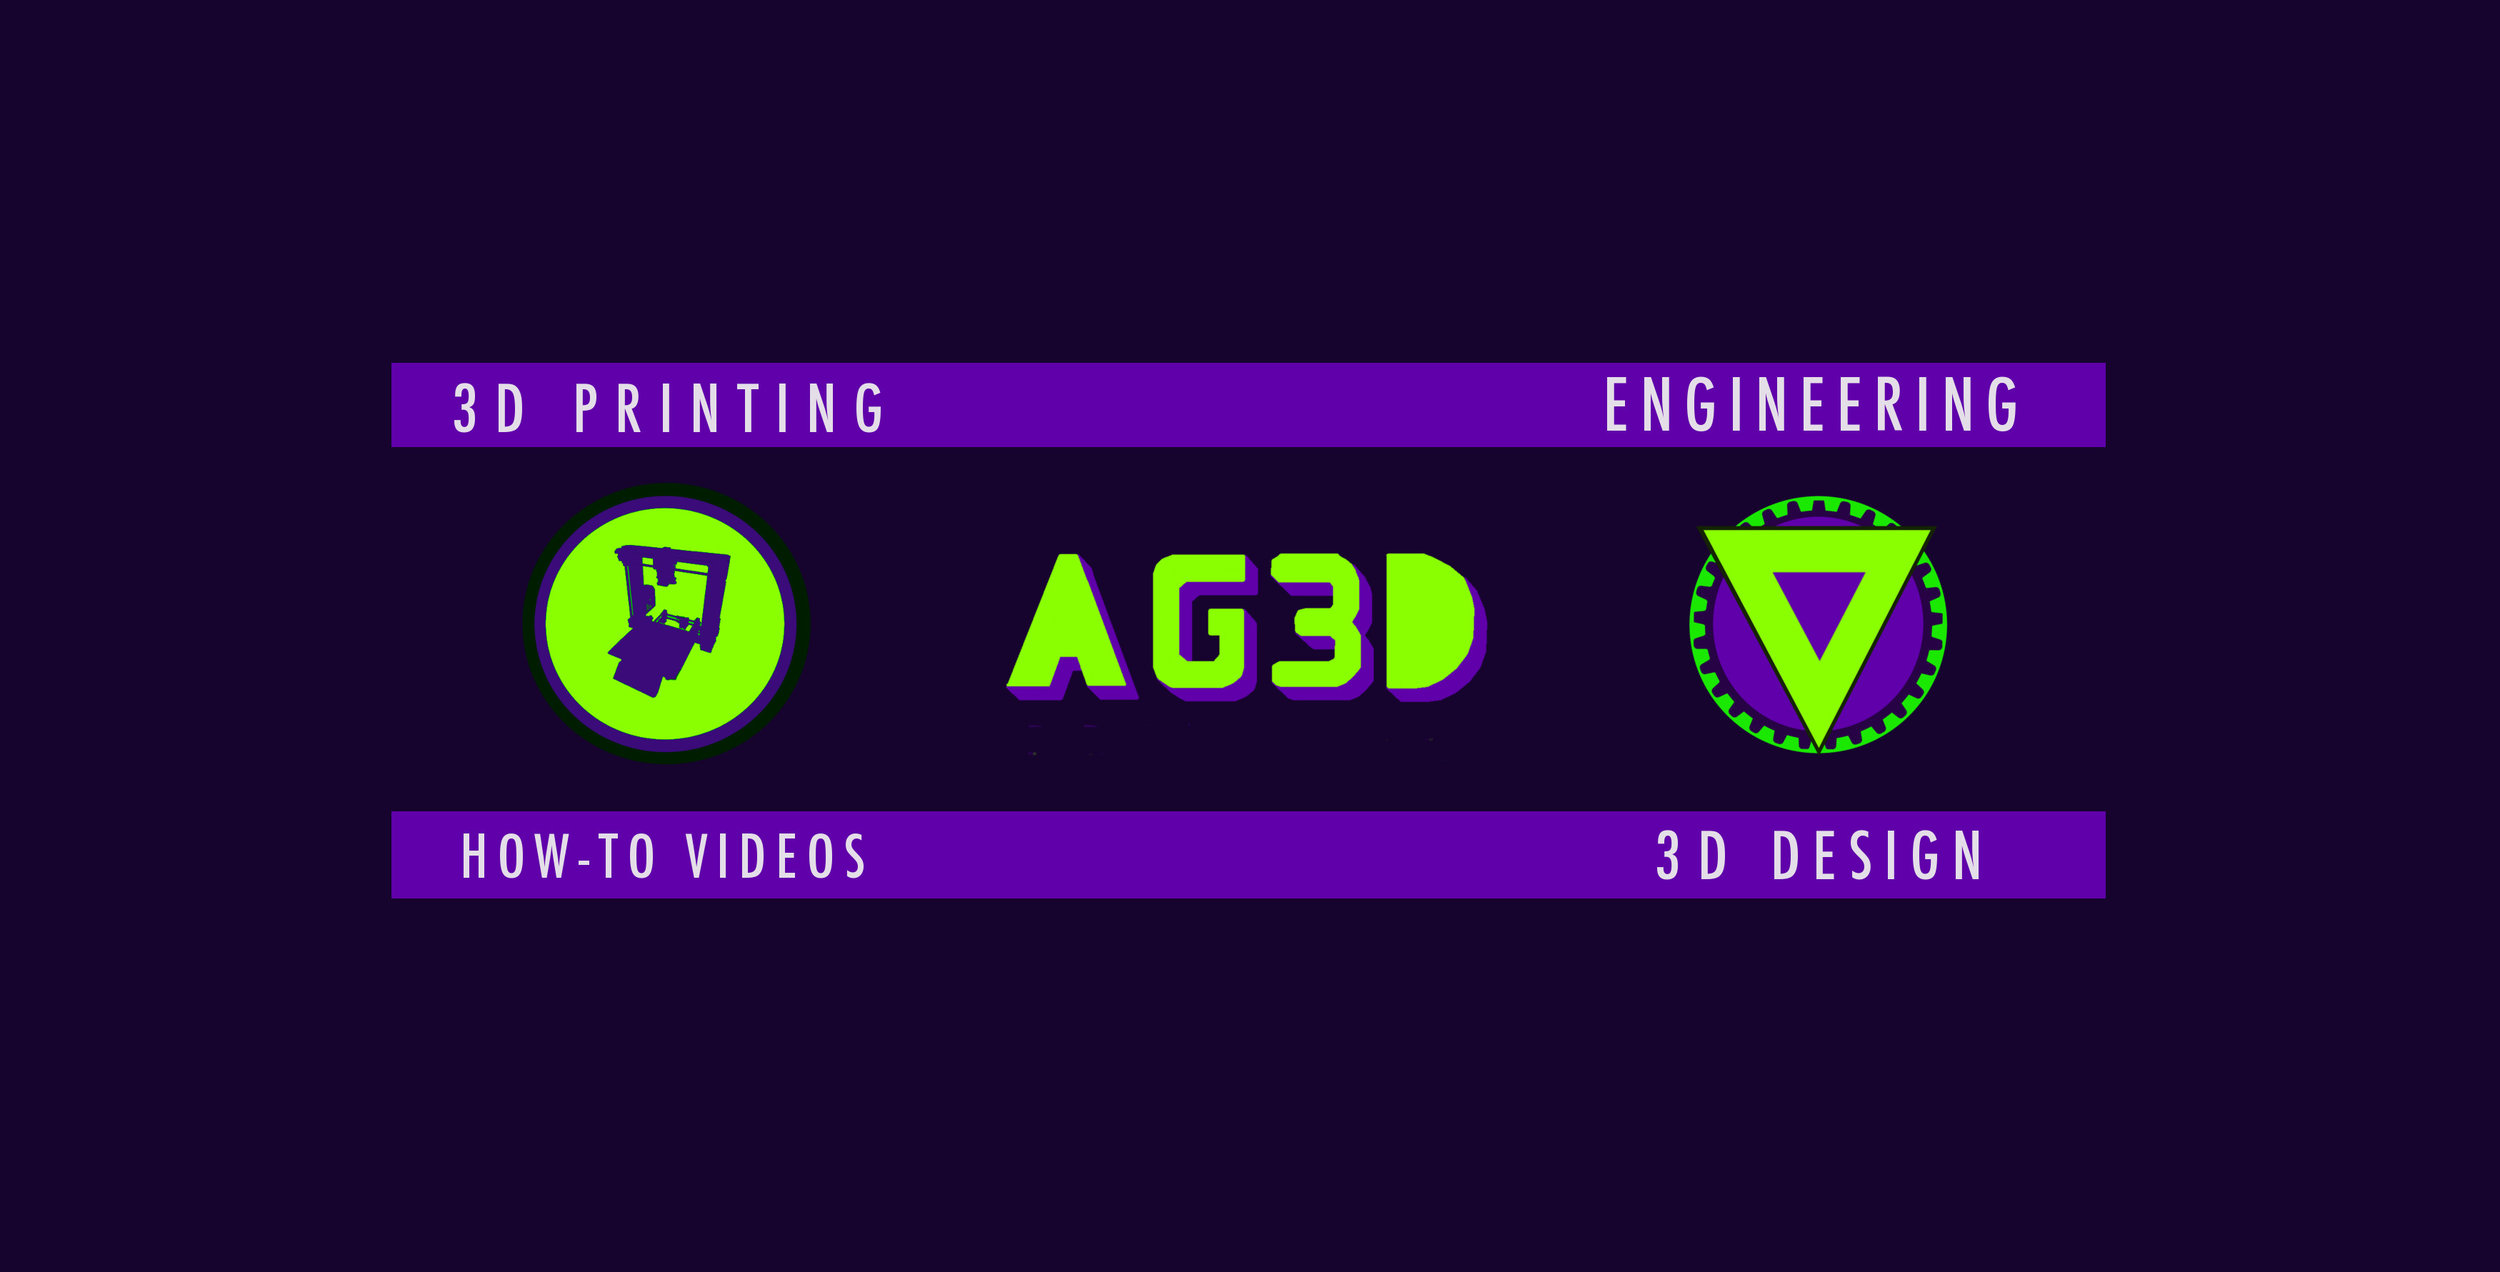 AG3D is also creating educational video content on YouTube for anyone interested in 3D printing with the ultimate goal of teaching you how to 3D Print right at home!